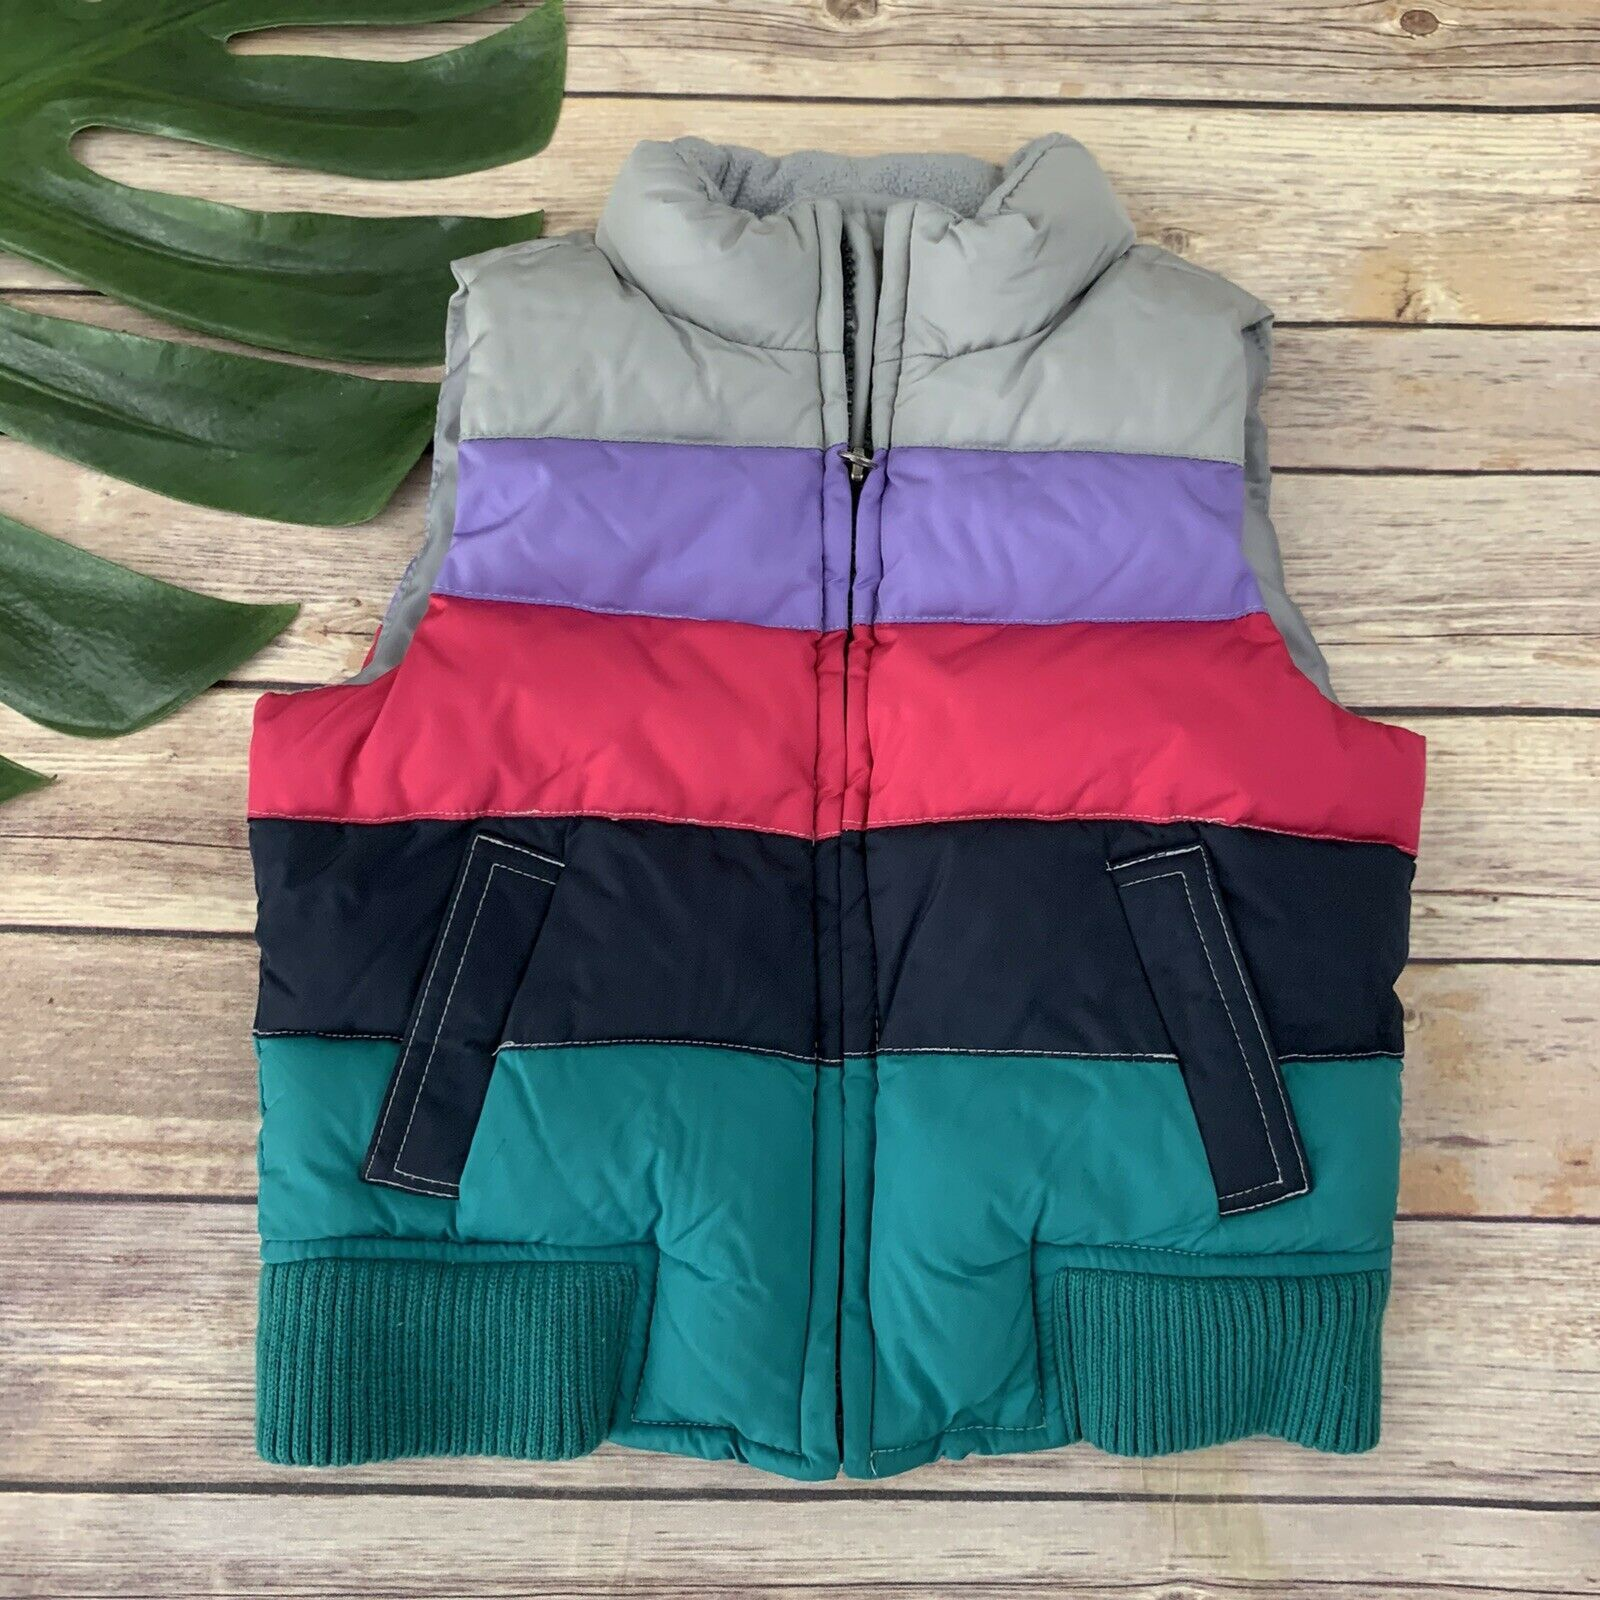 Primary image for Gap Kids Girls Puffer Vest Size XS 4-5 Pink Gray Stripes Zip Up Colorful